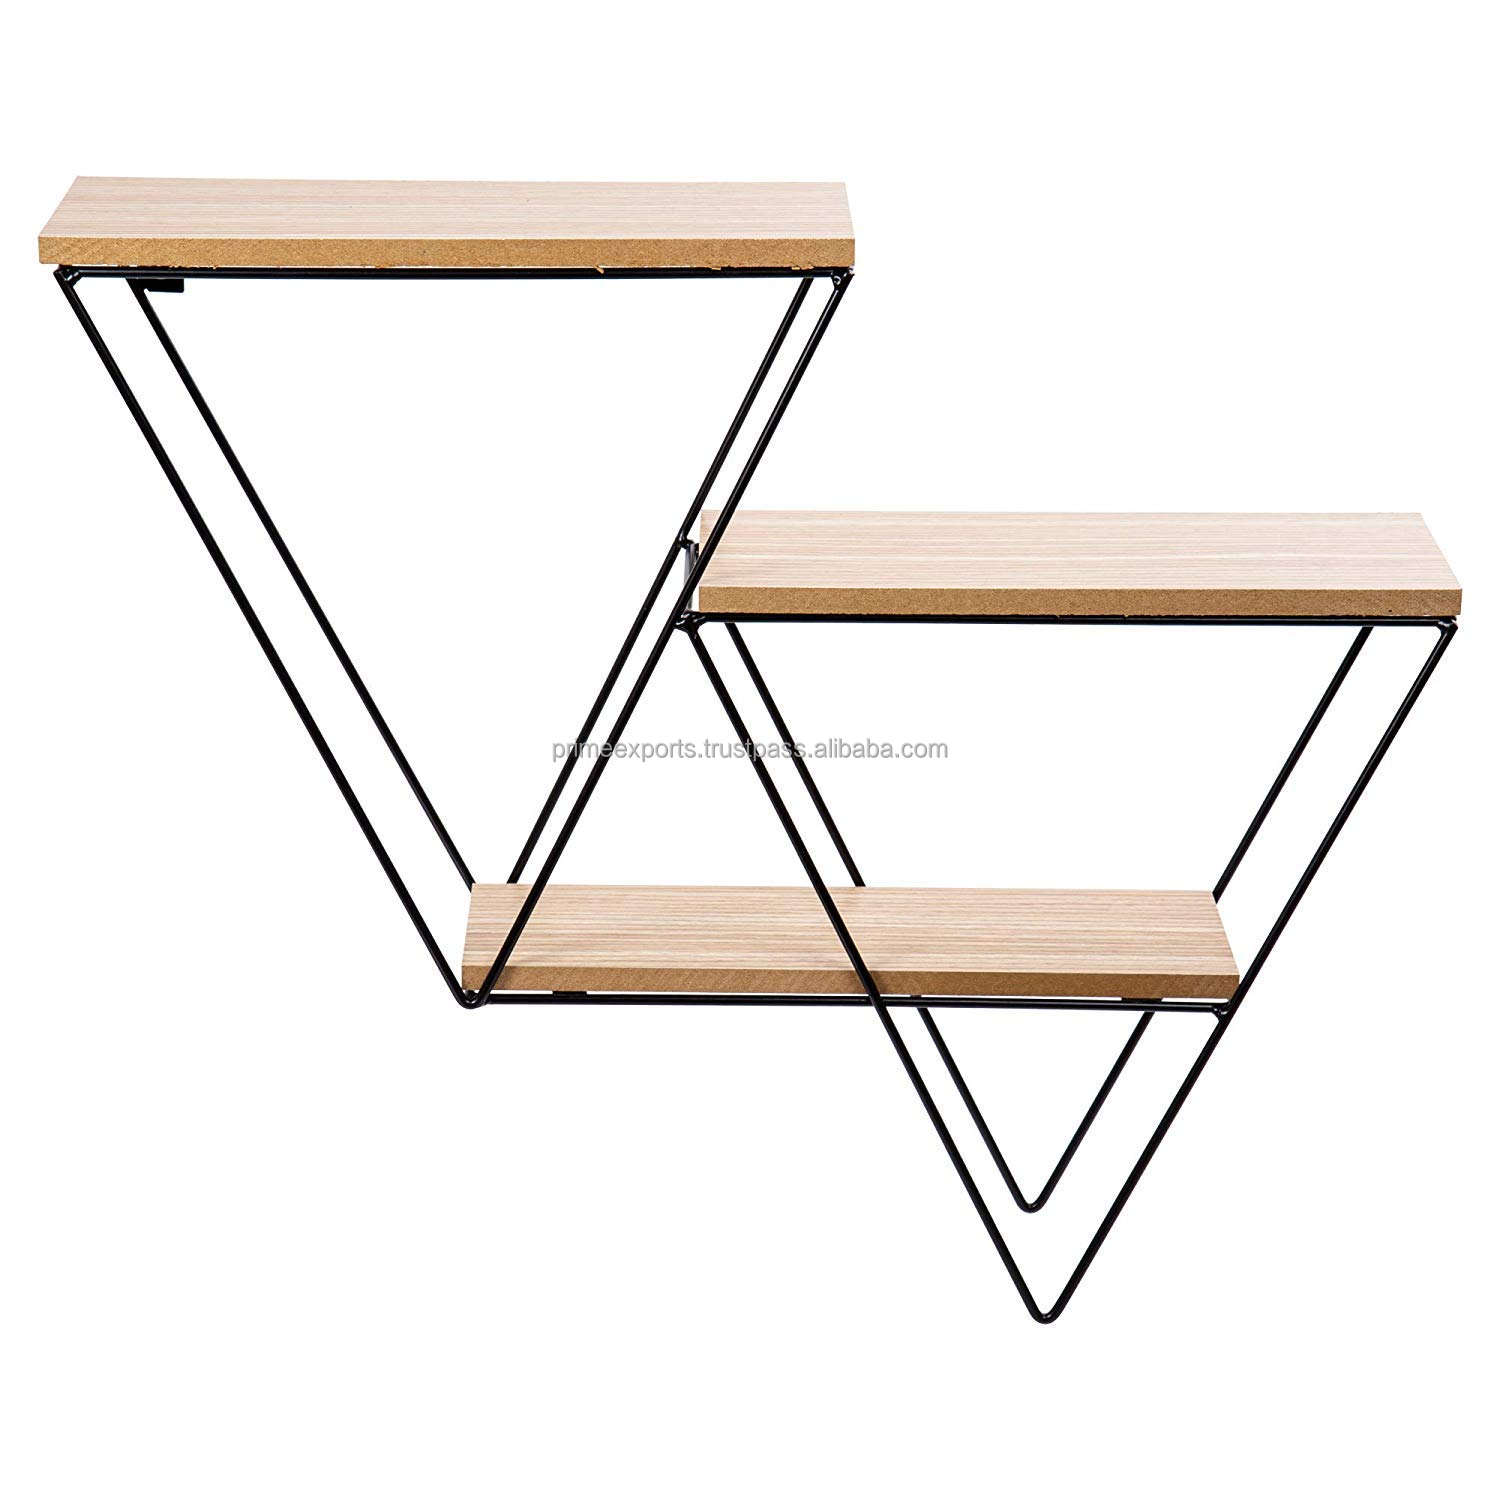 Estante de pared con formas geométricas, estantería de pared con forma triangular, de diseño escandinavo y europeo, nuevo